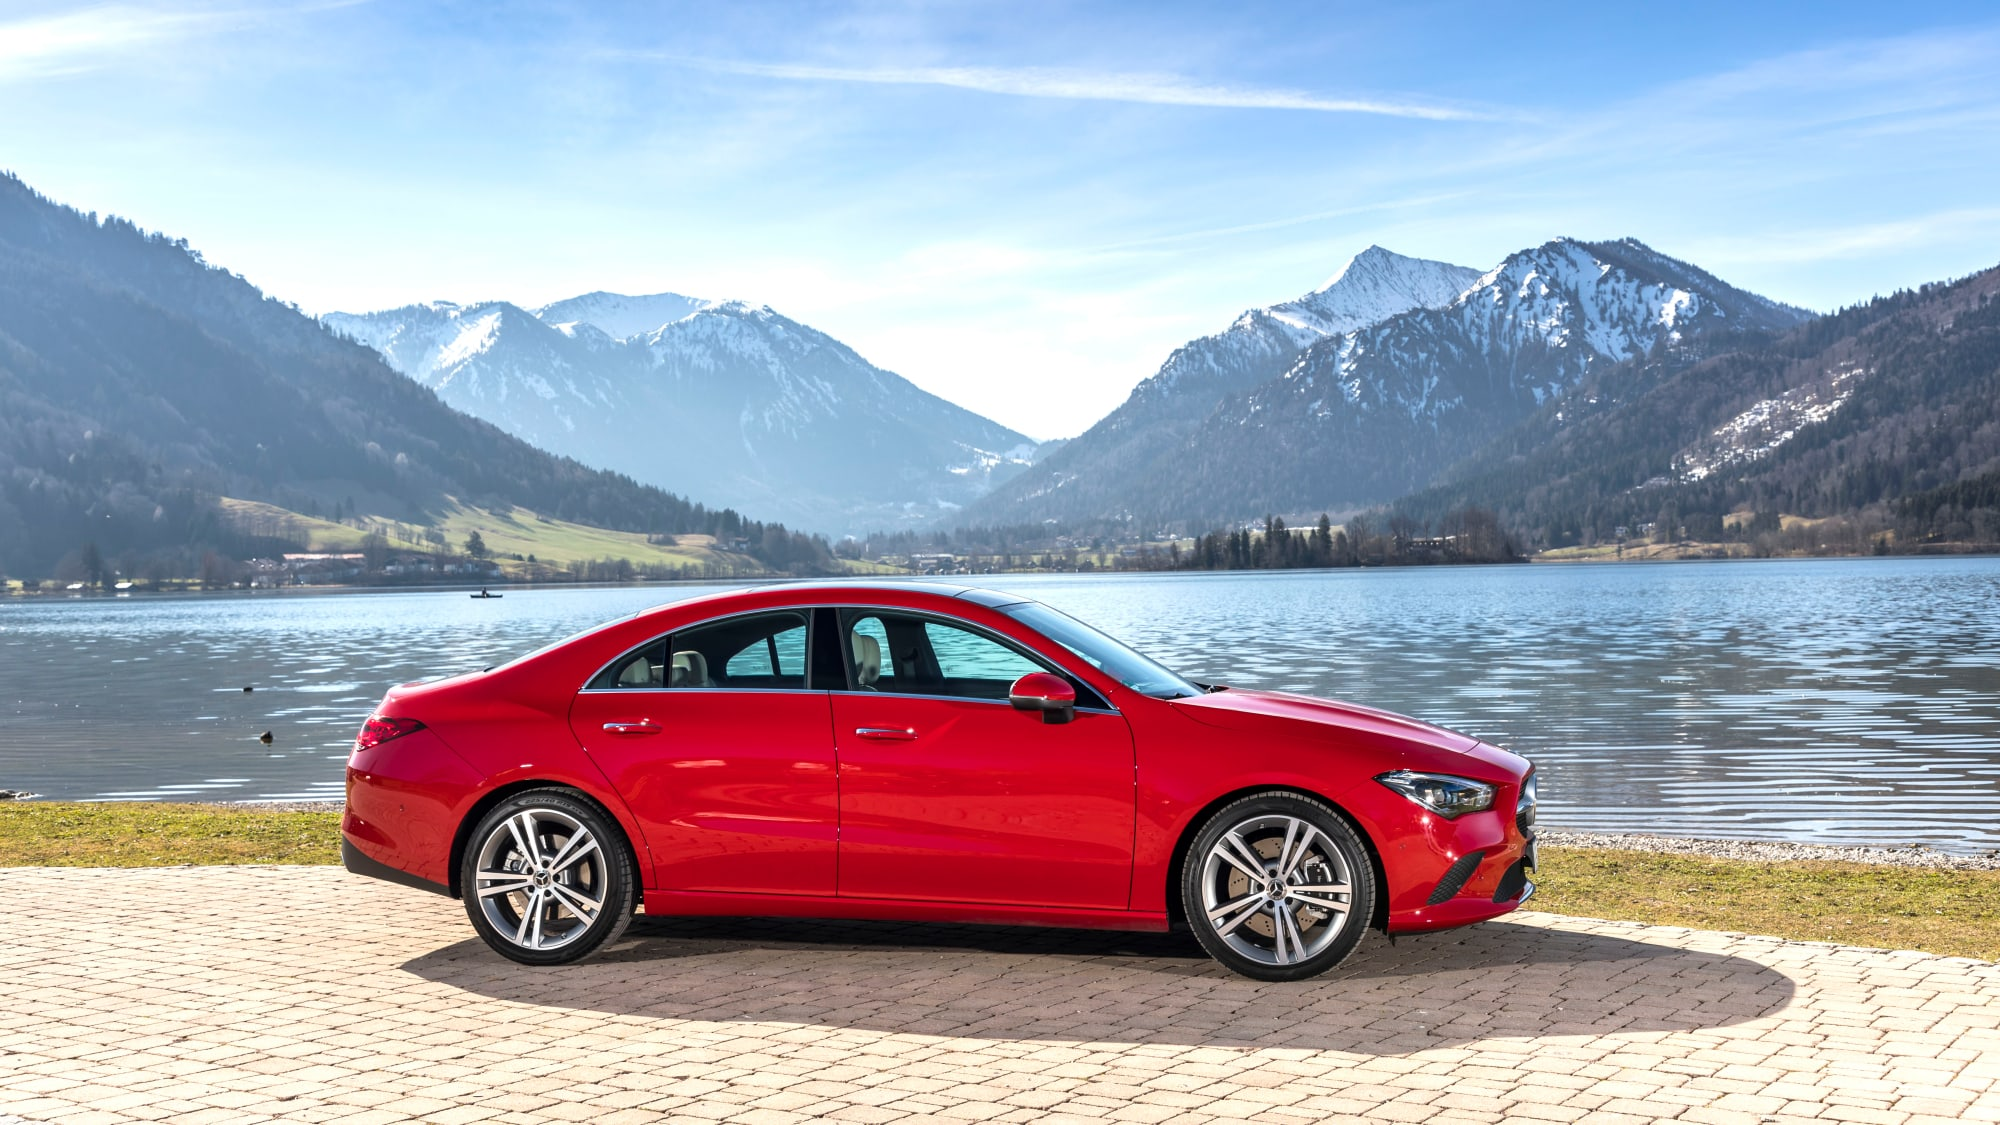 roter Mercedes CLA Coupe steht an einem See